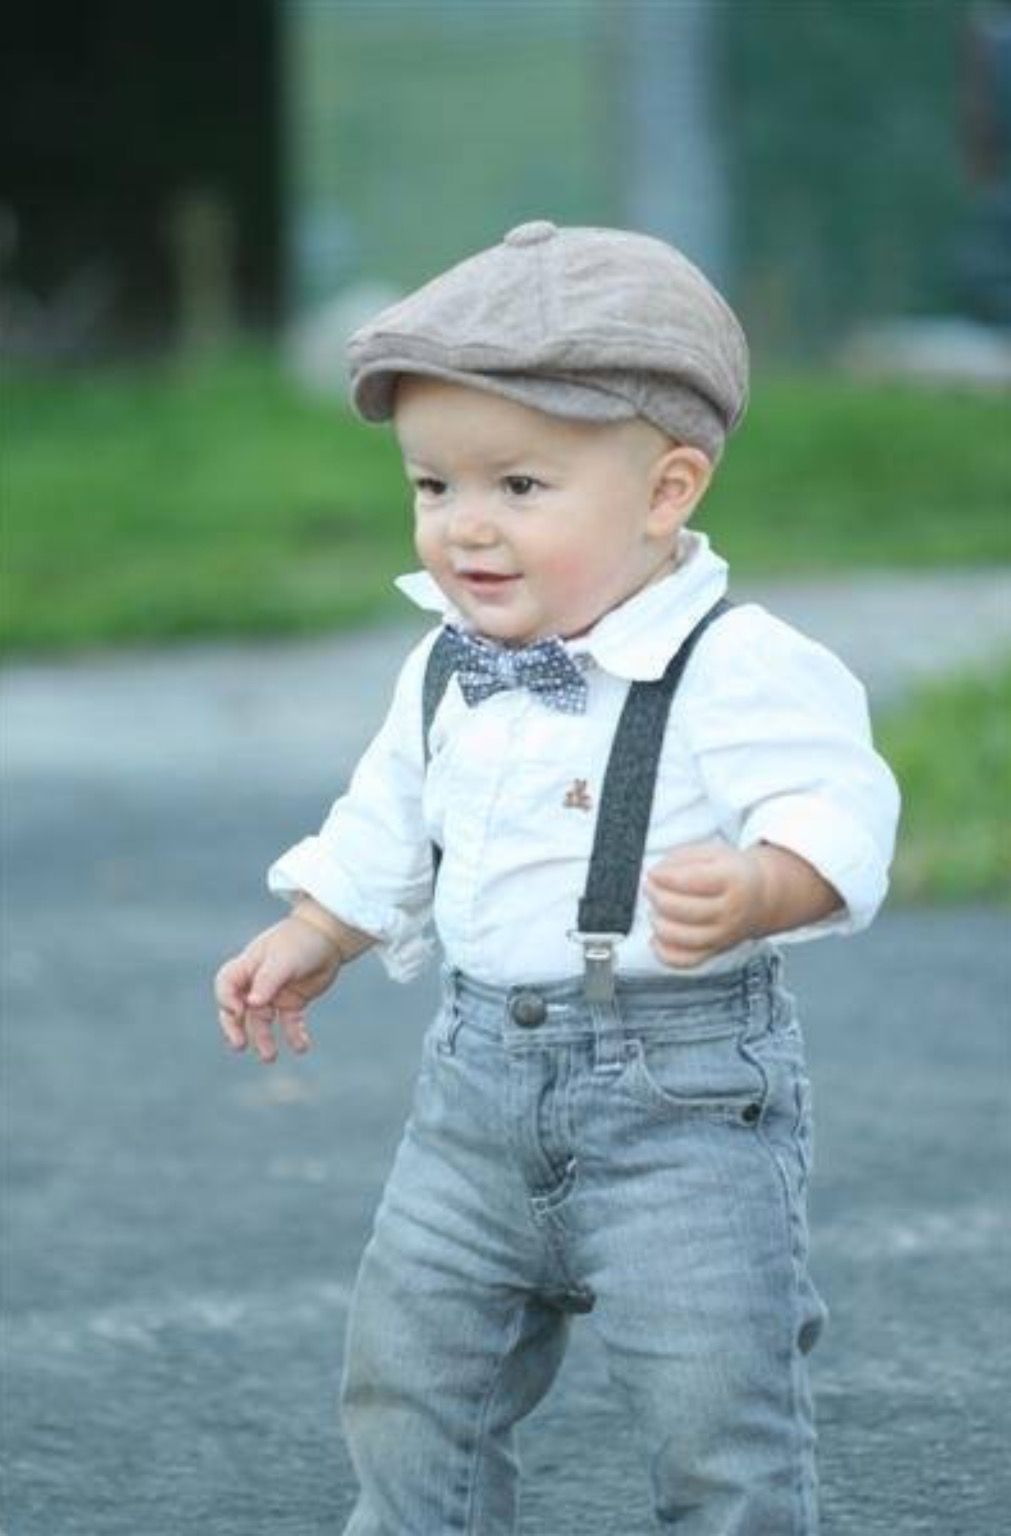 Pin by Vanessa Leite on Little man | Pinterest | Babies clothes and ...